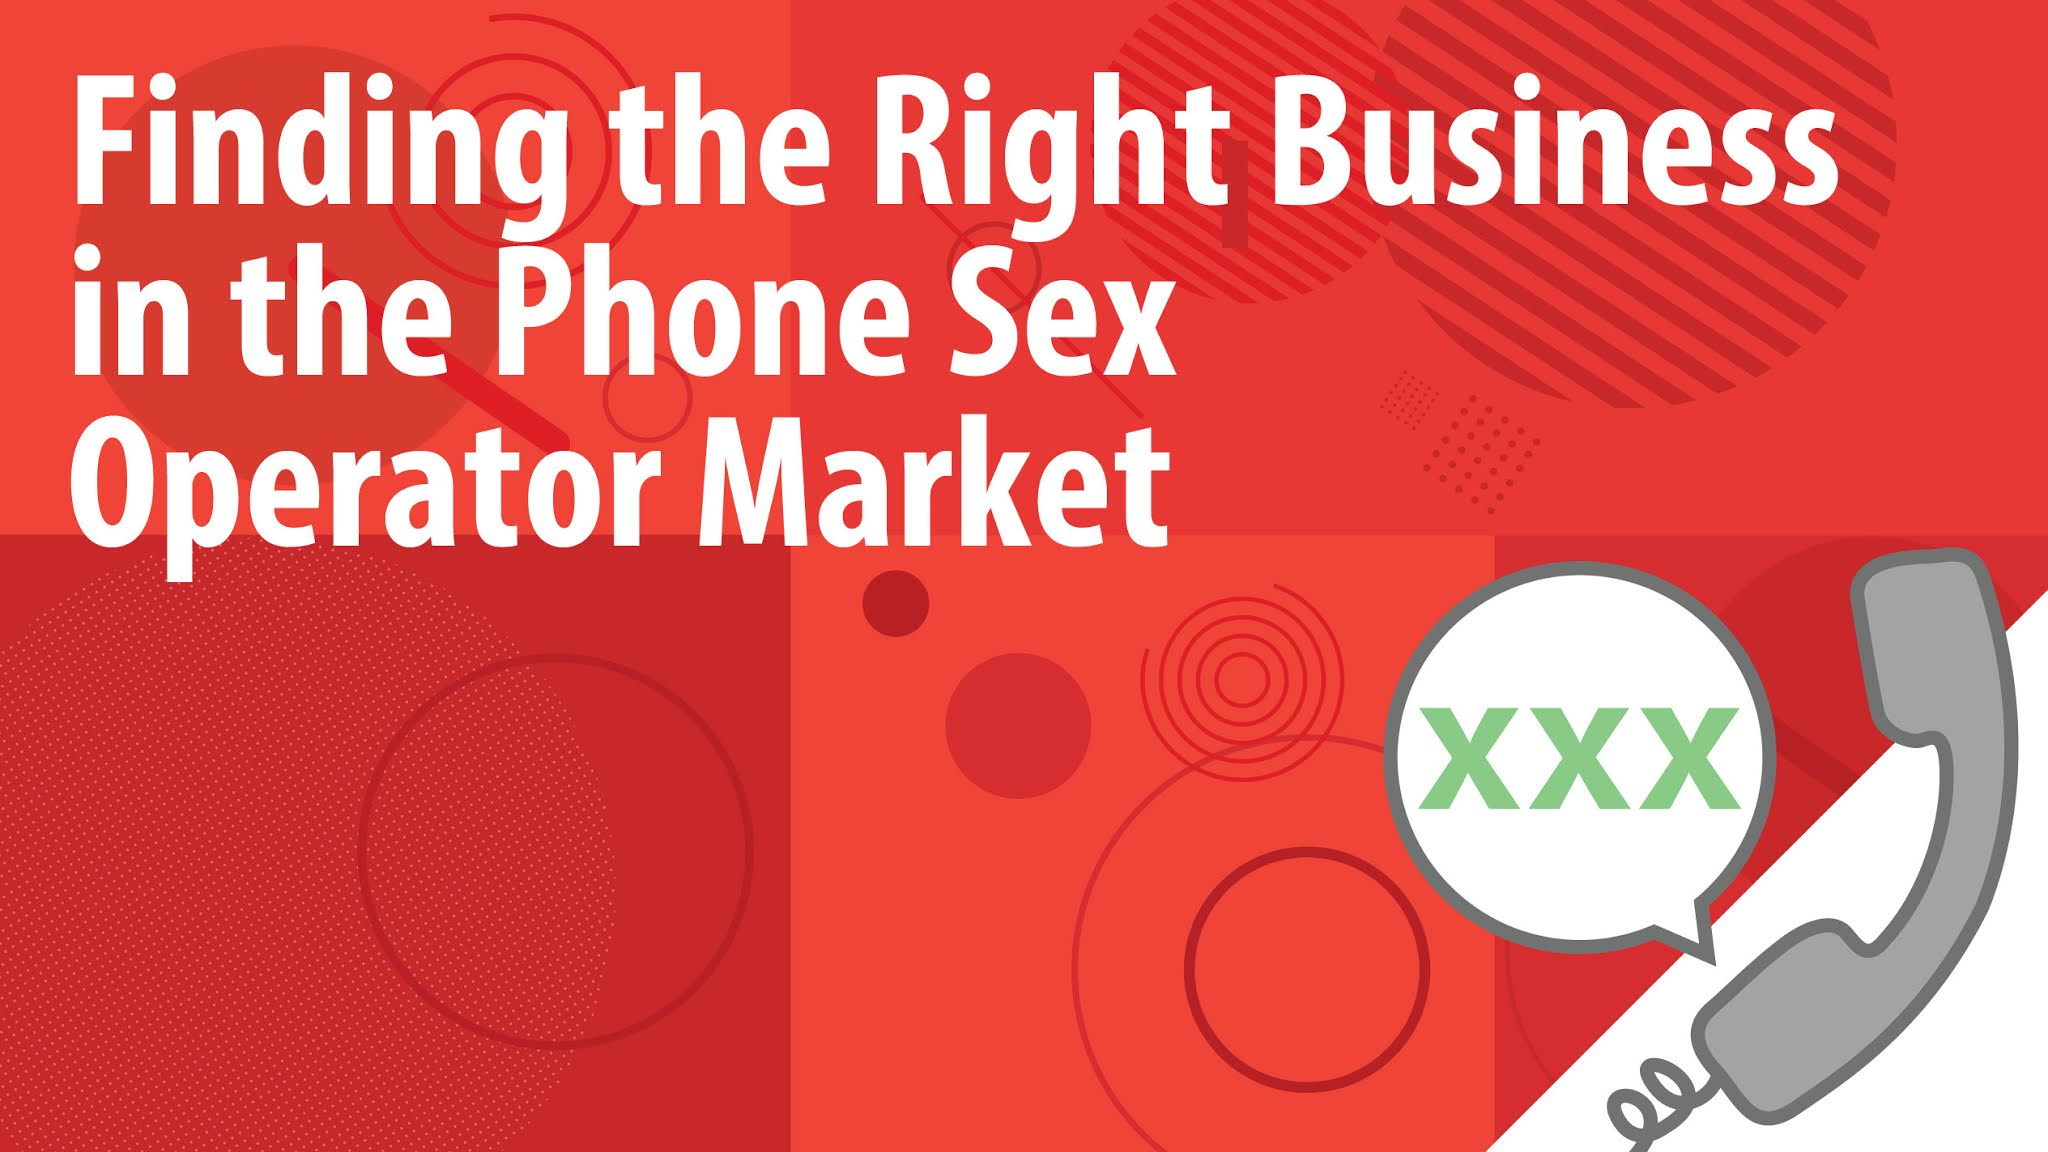 Finding the Right Business in the Phone Sex Operator Market